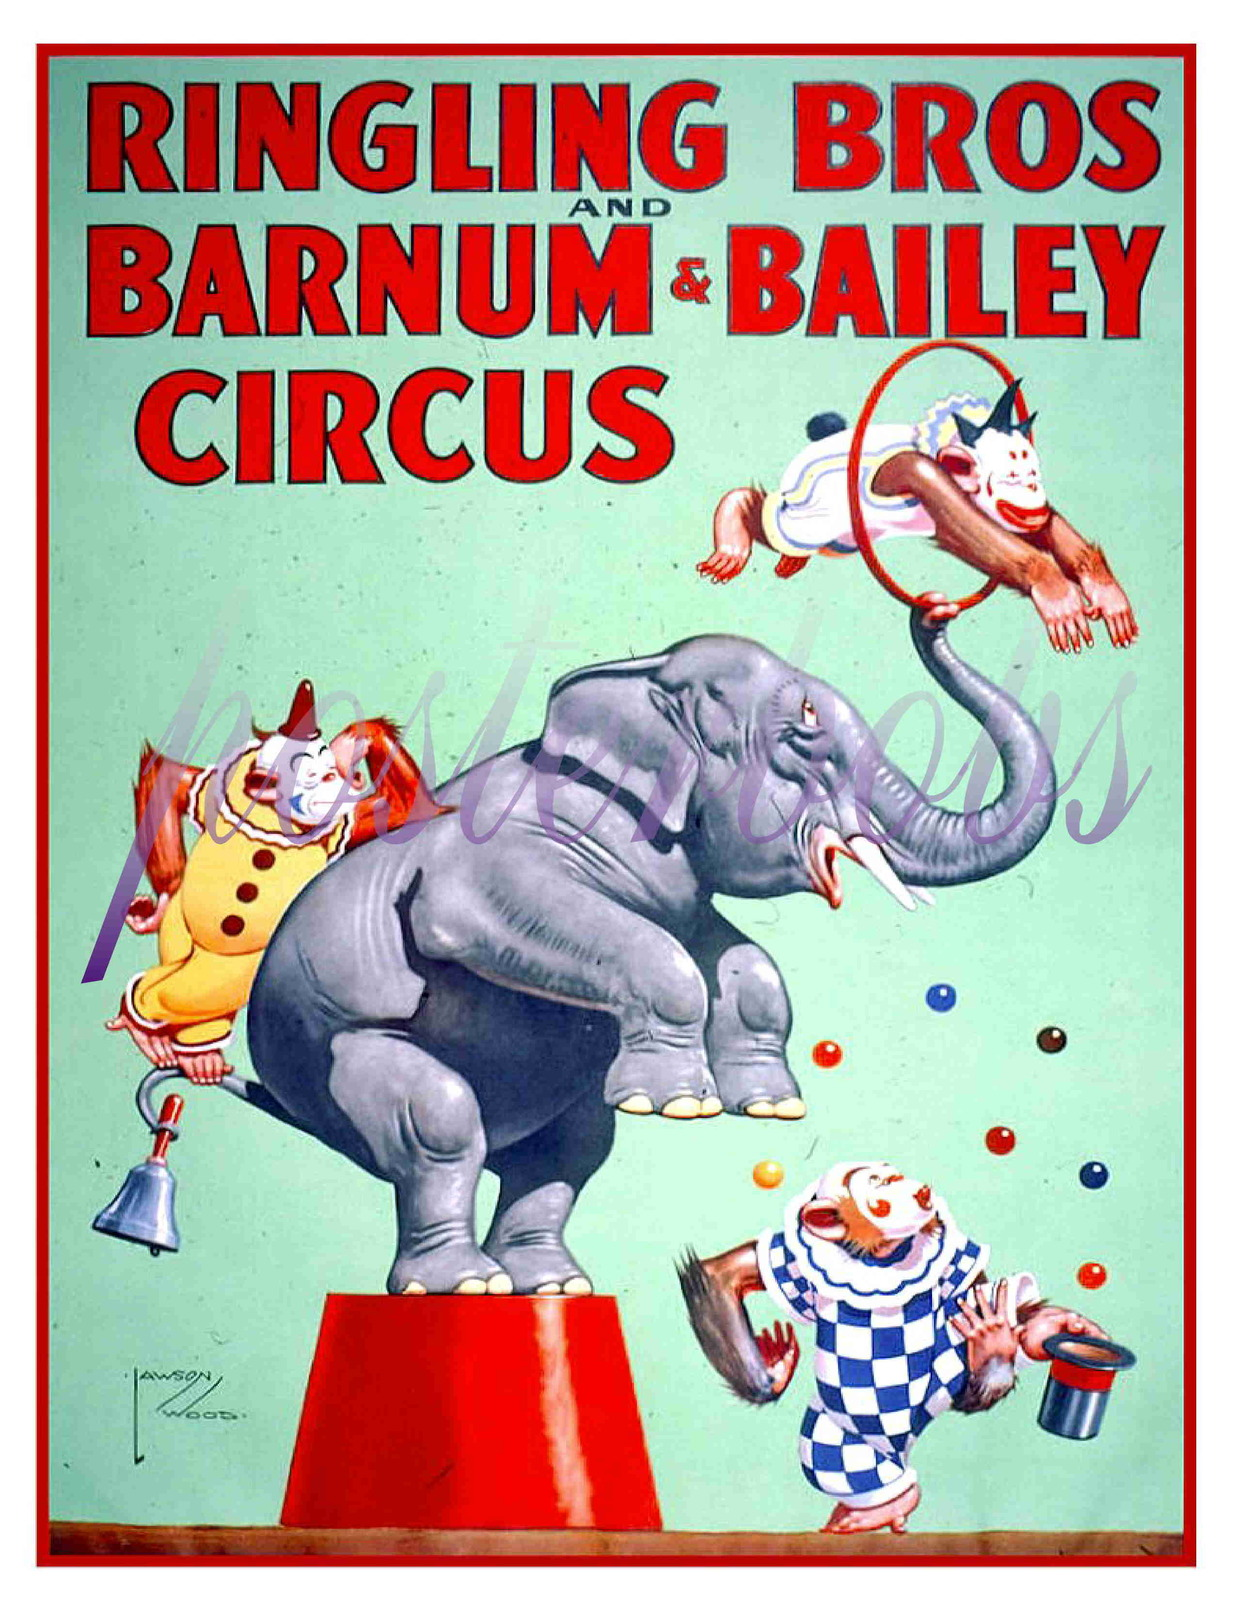 Ringling Bros. and Barnum & Bailey Circus 13 x 10 inch CANVAS Giclee Print